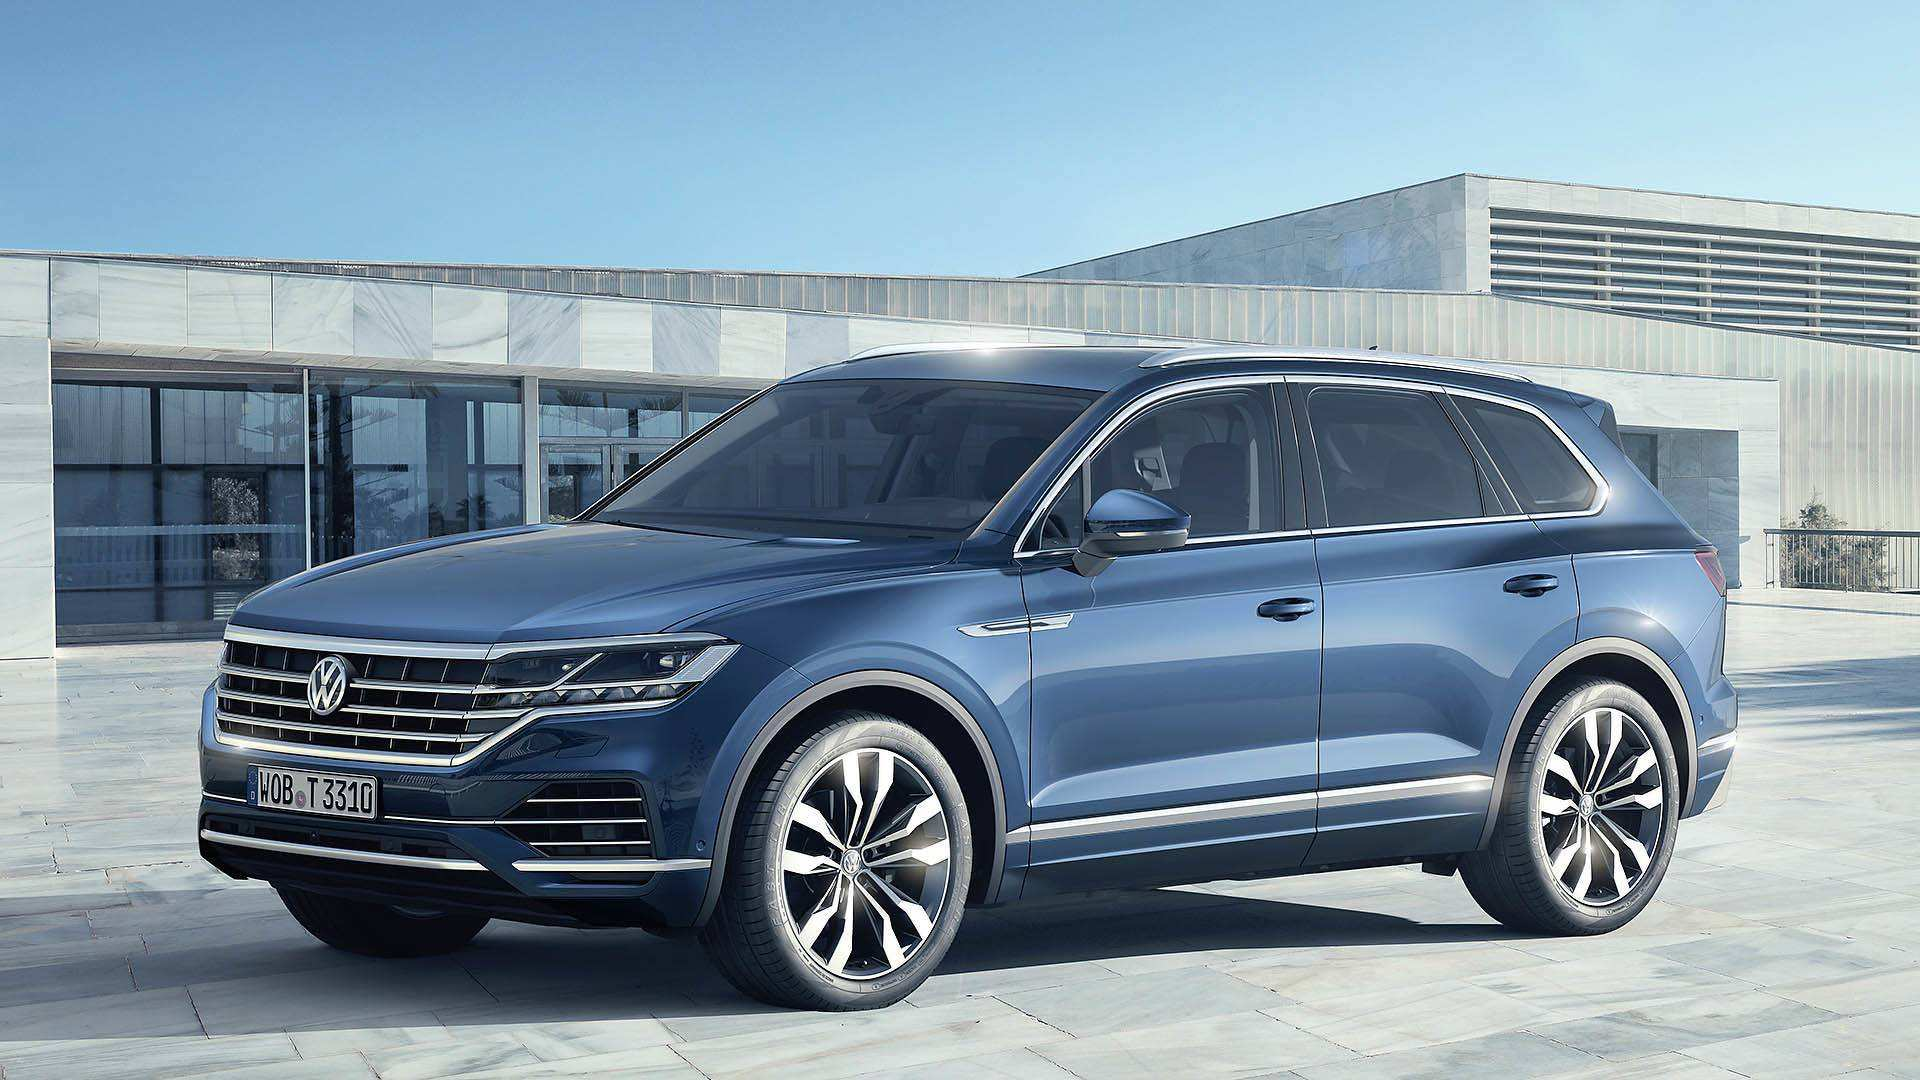 26 A Volkswagen 2019 Touareg Price Exterior And Interior